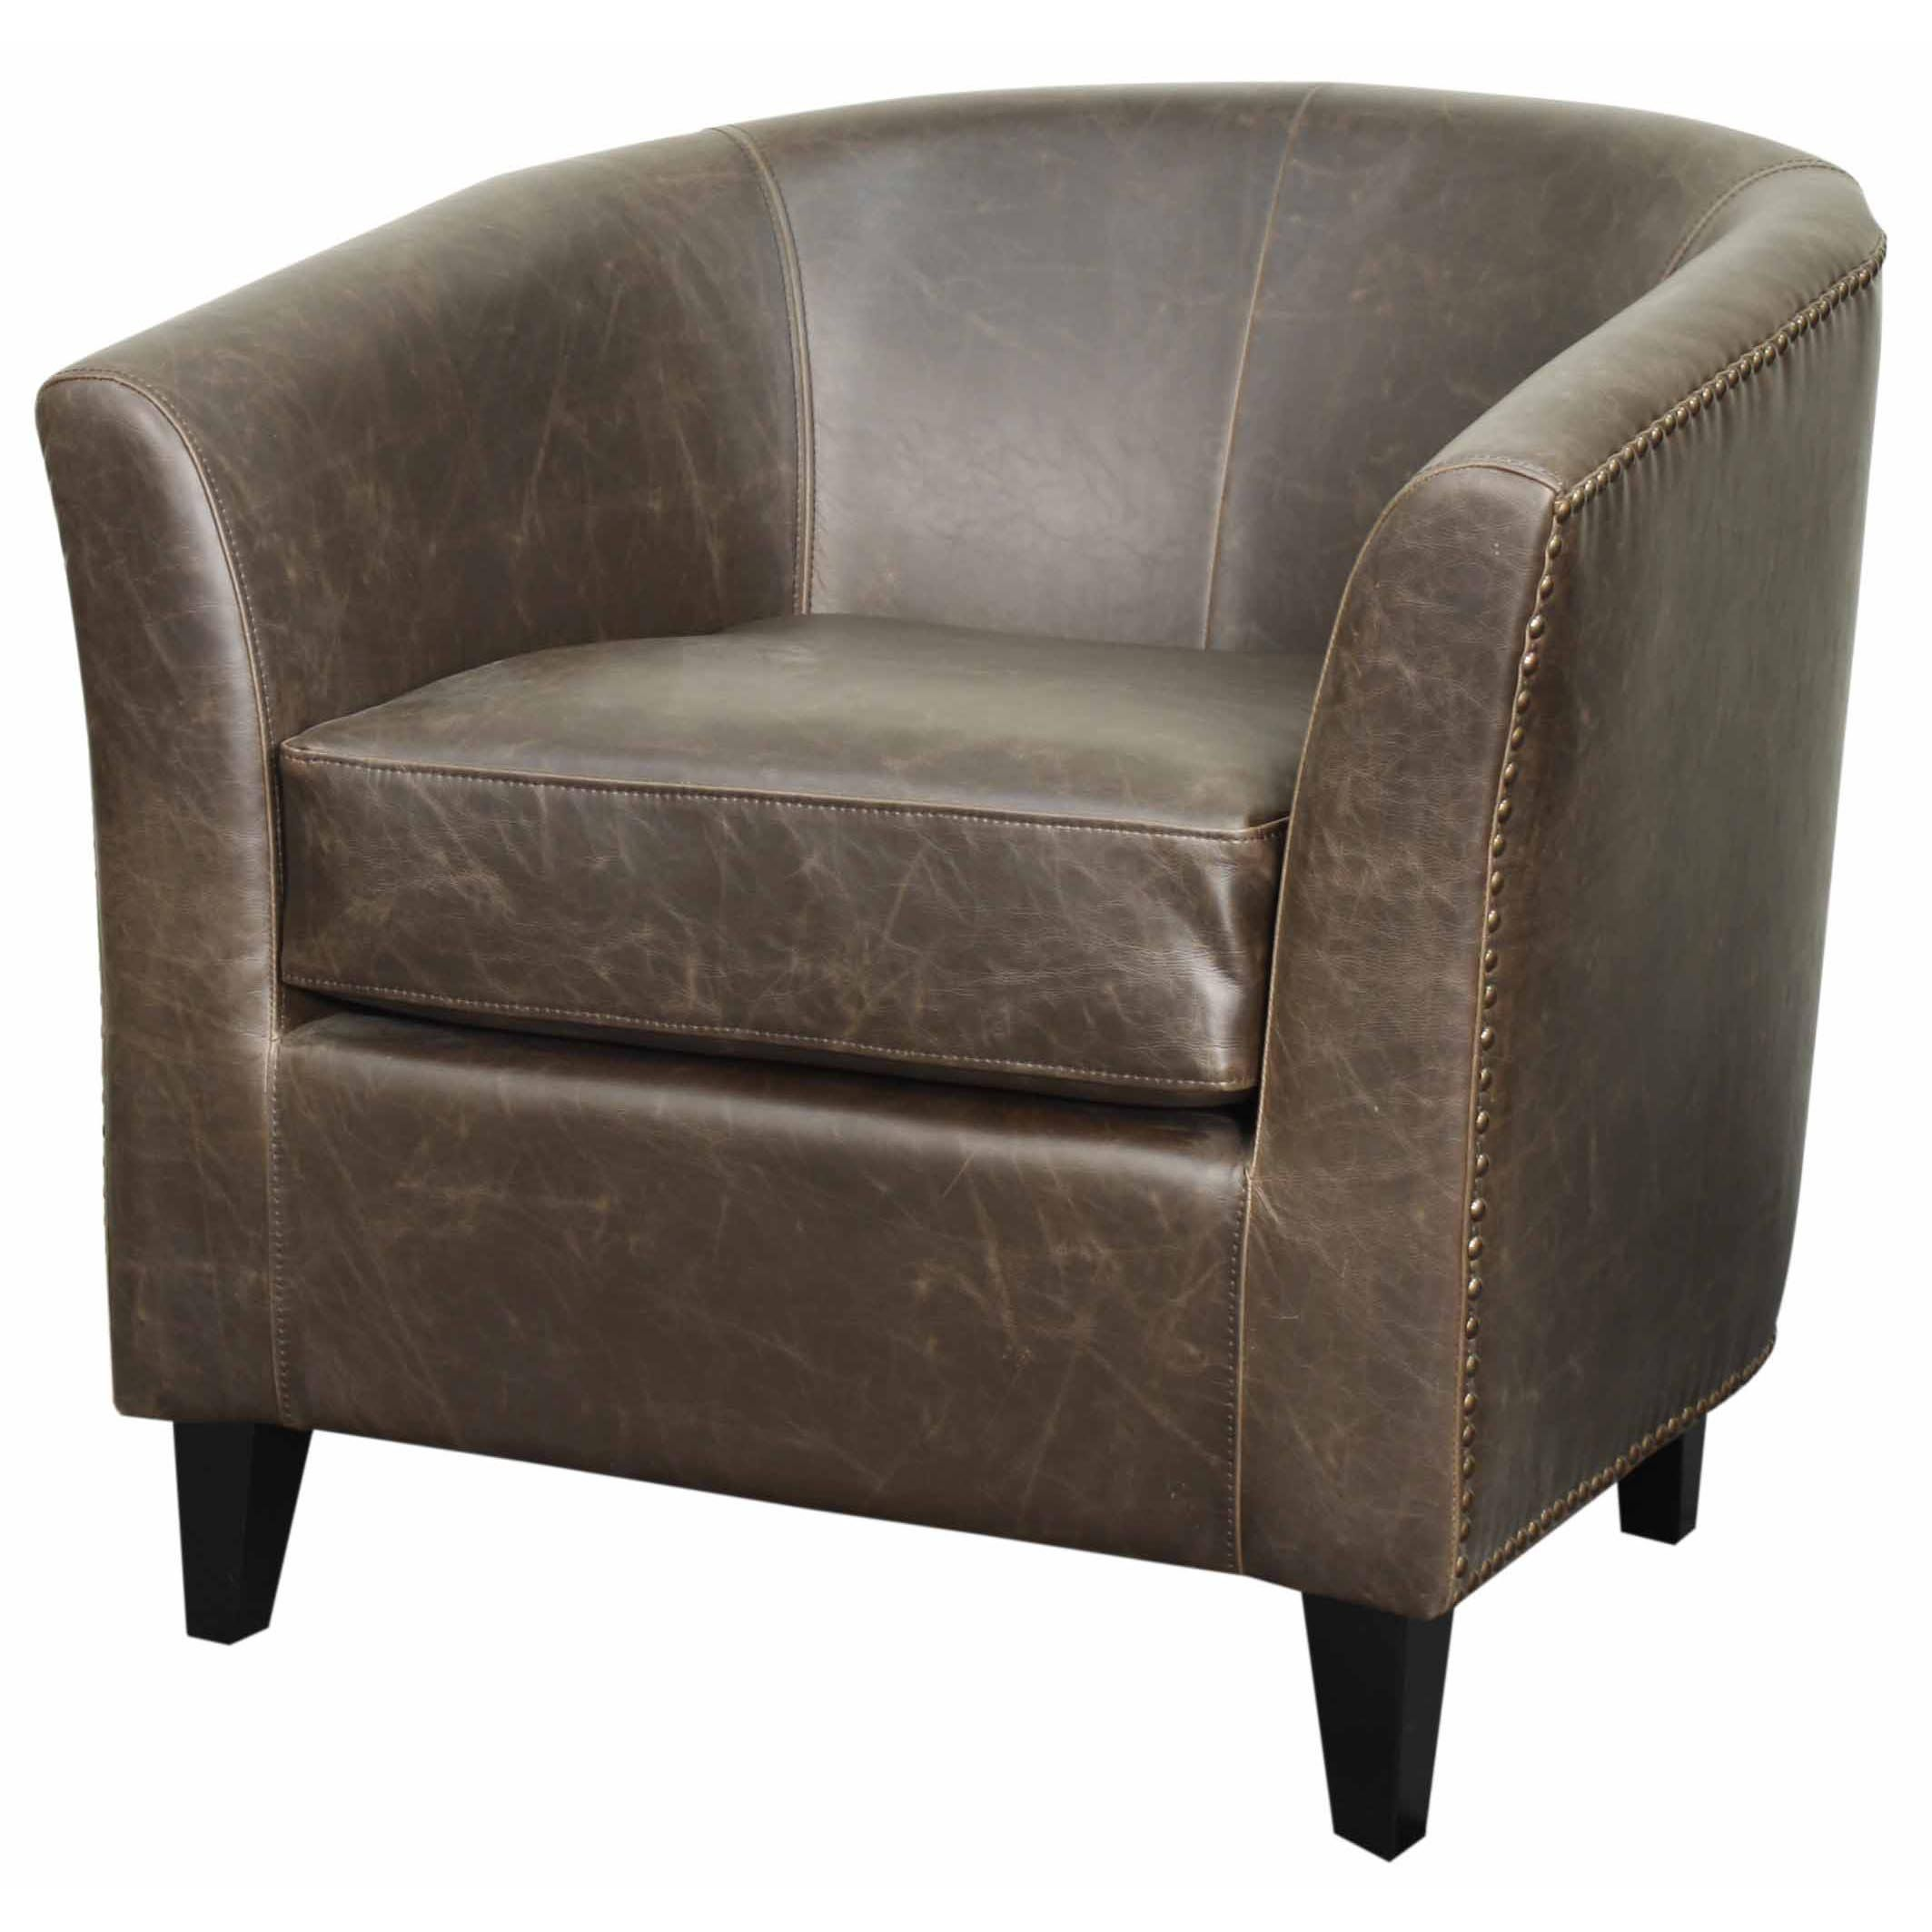 Orson Bonded Leather Tub Chair Black Legs Tub Chair Barrel Chair Furniture